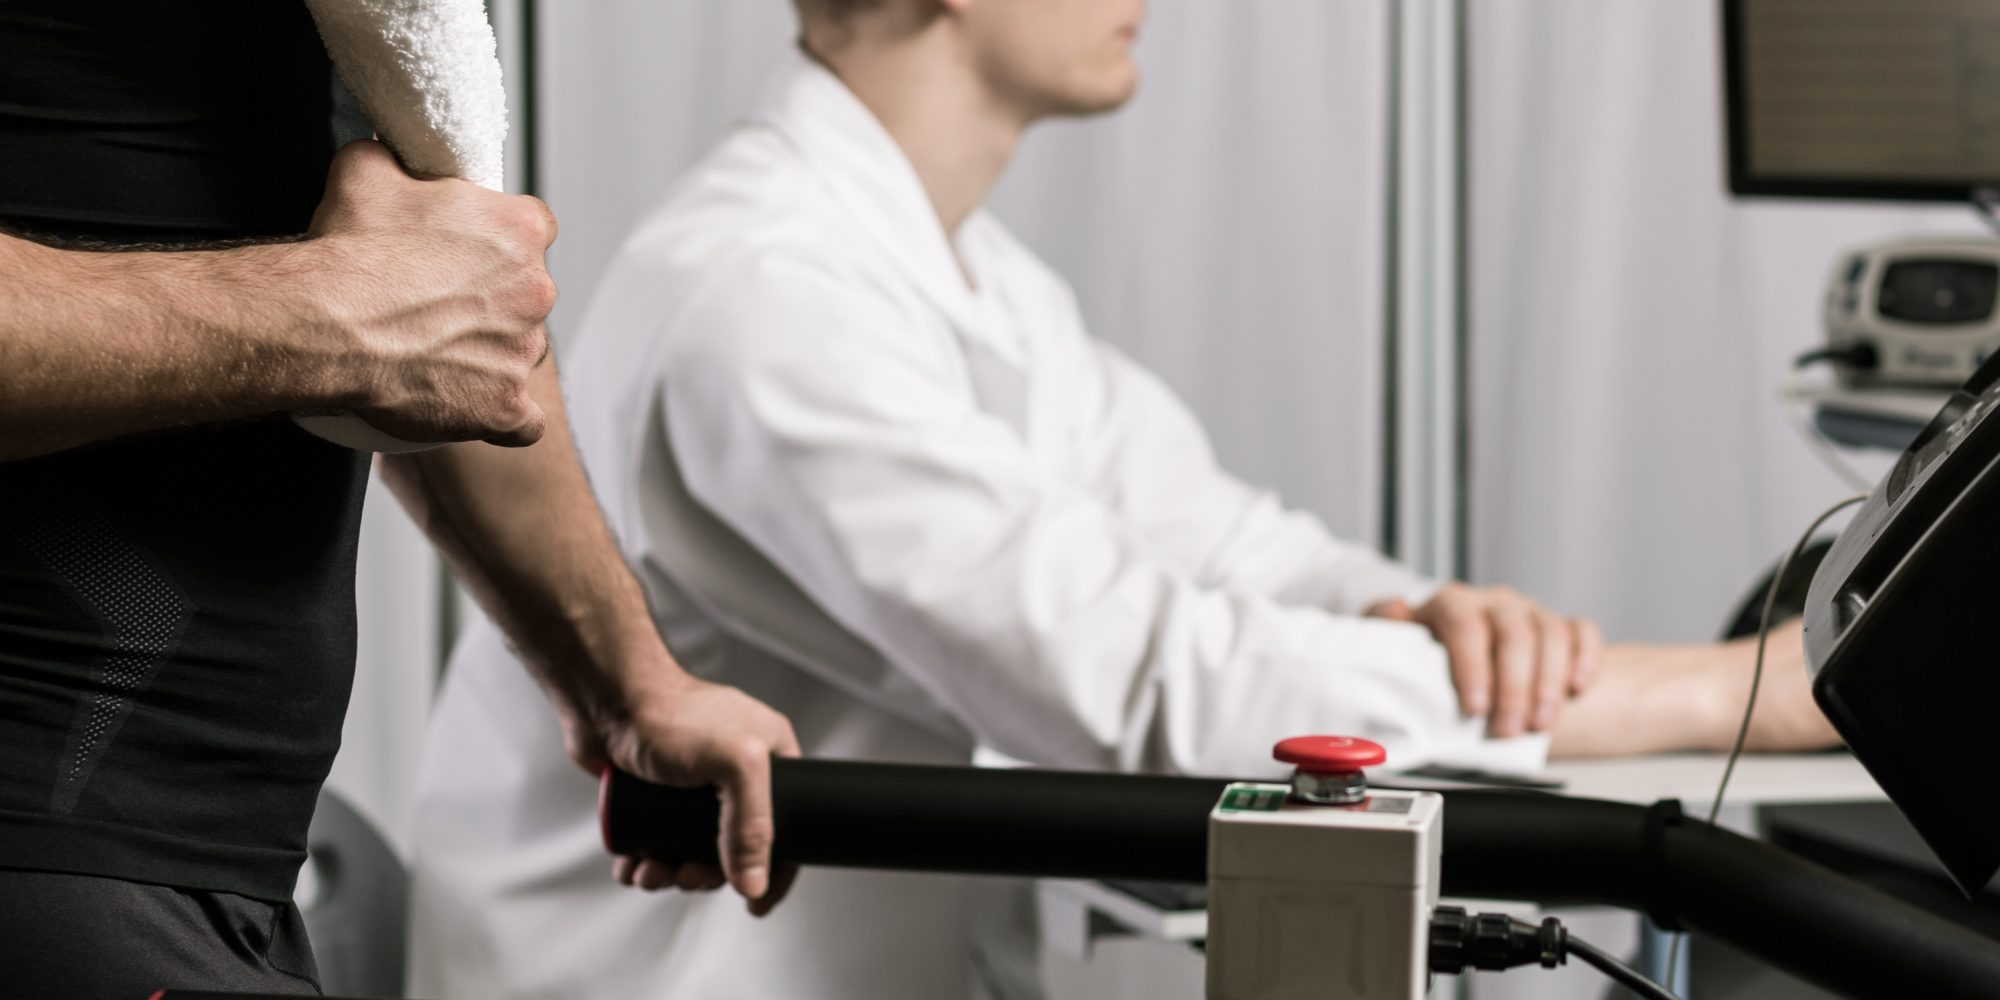 Young muscular athlete walking on treadmill during examination. Doctor checking his patient's aerobic capacity